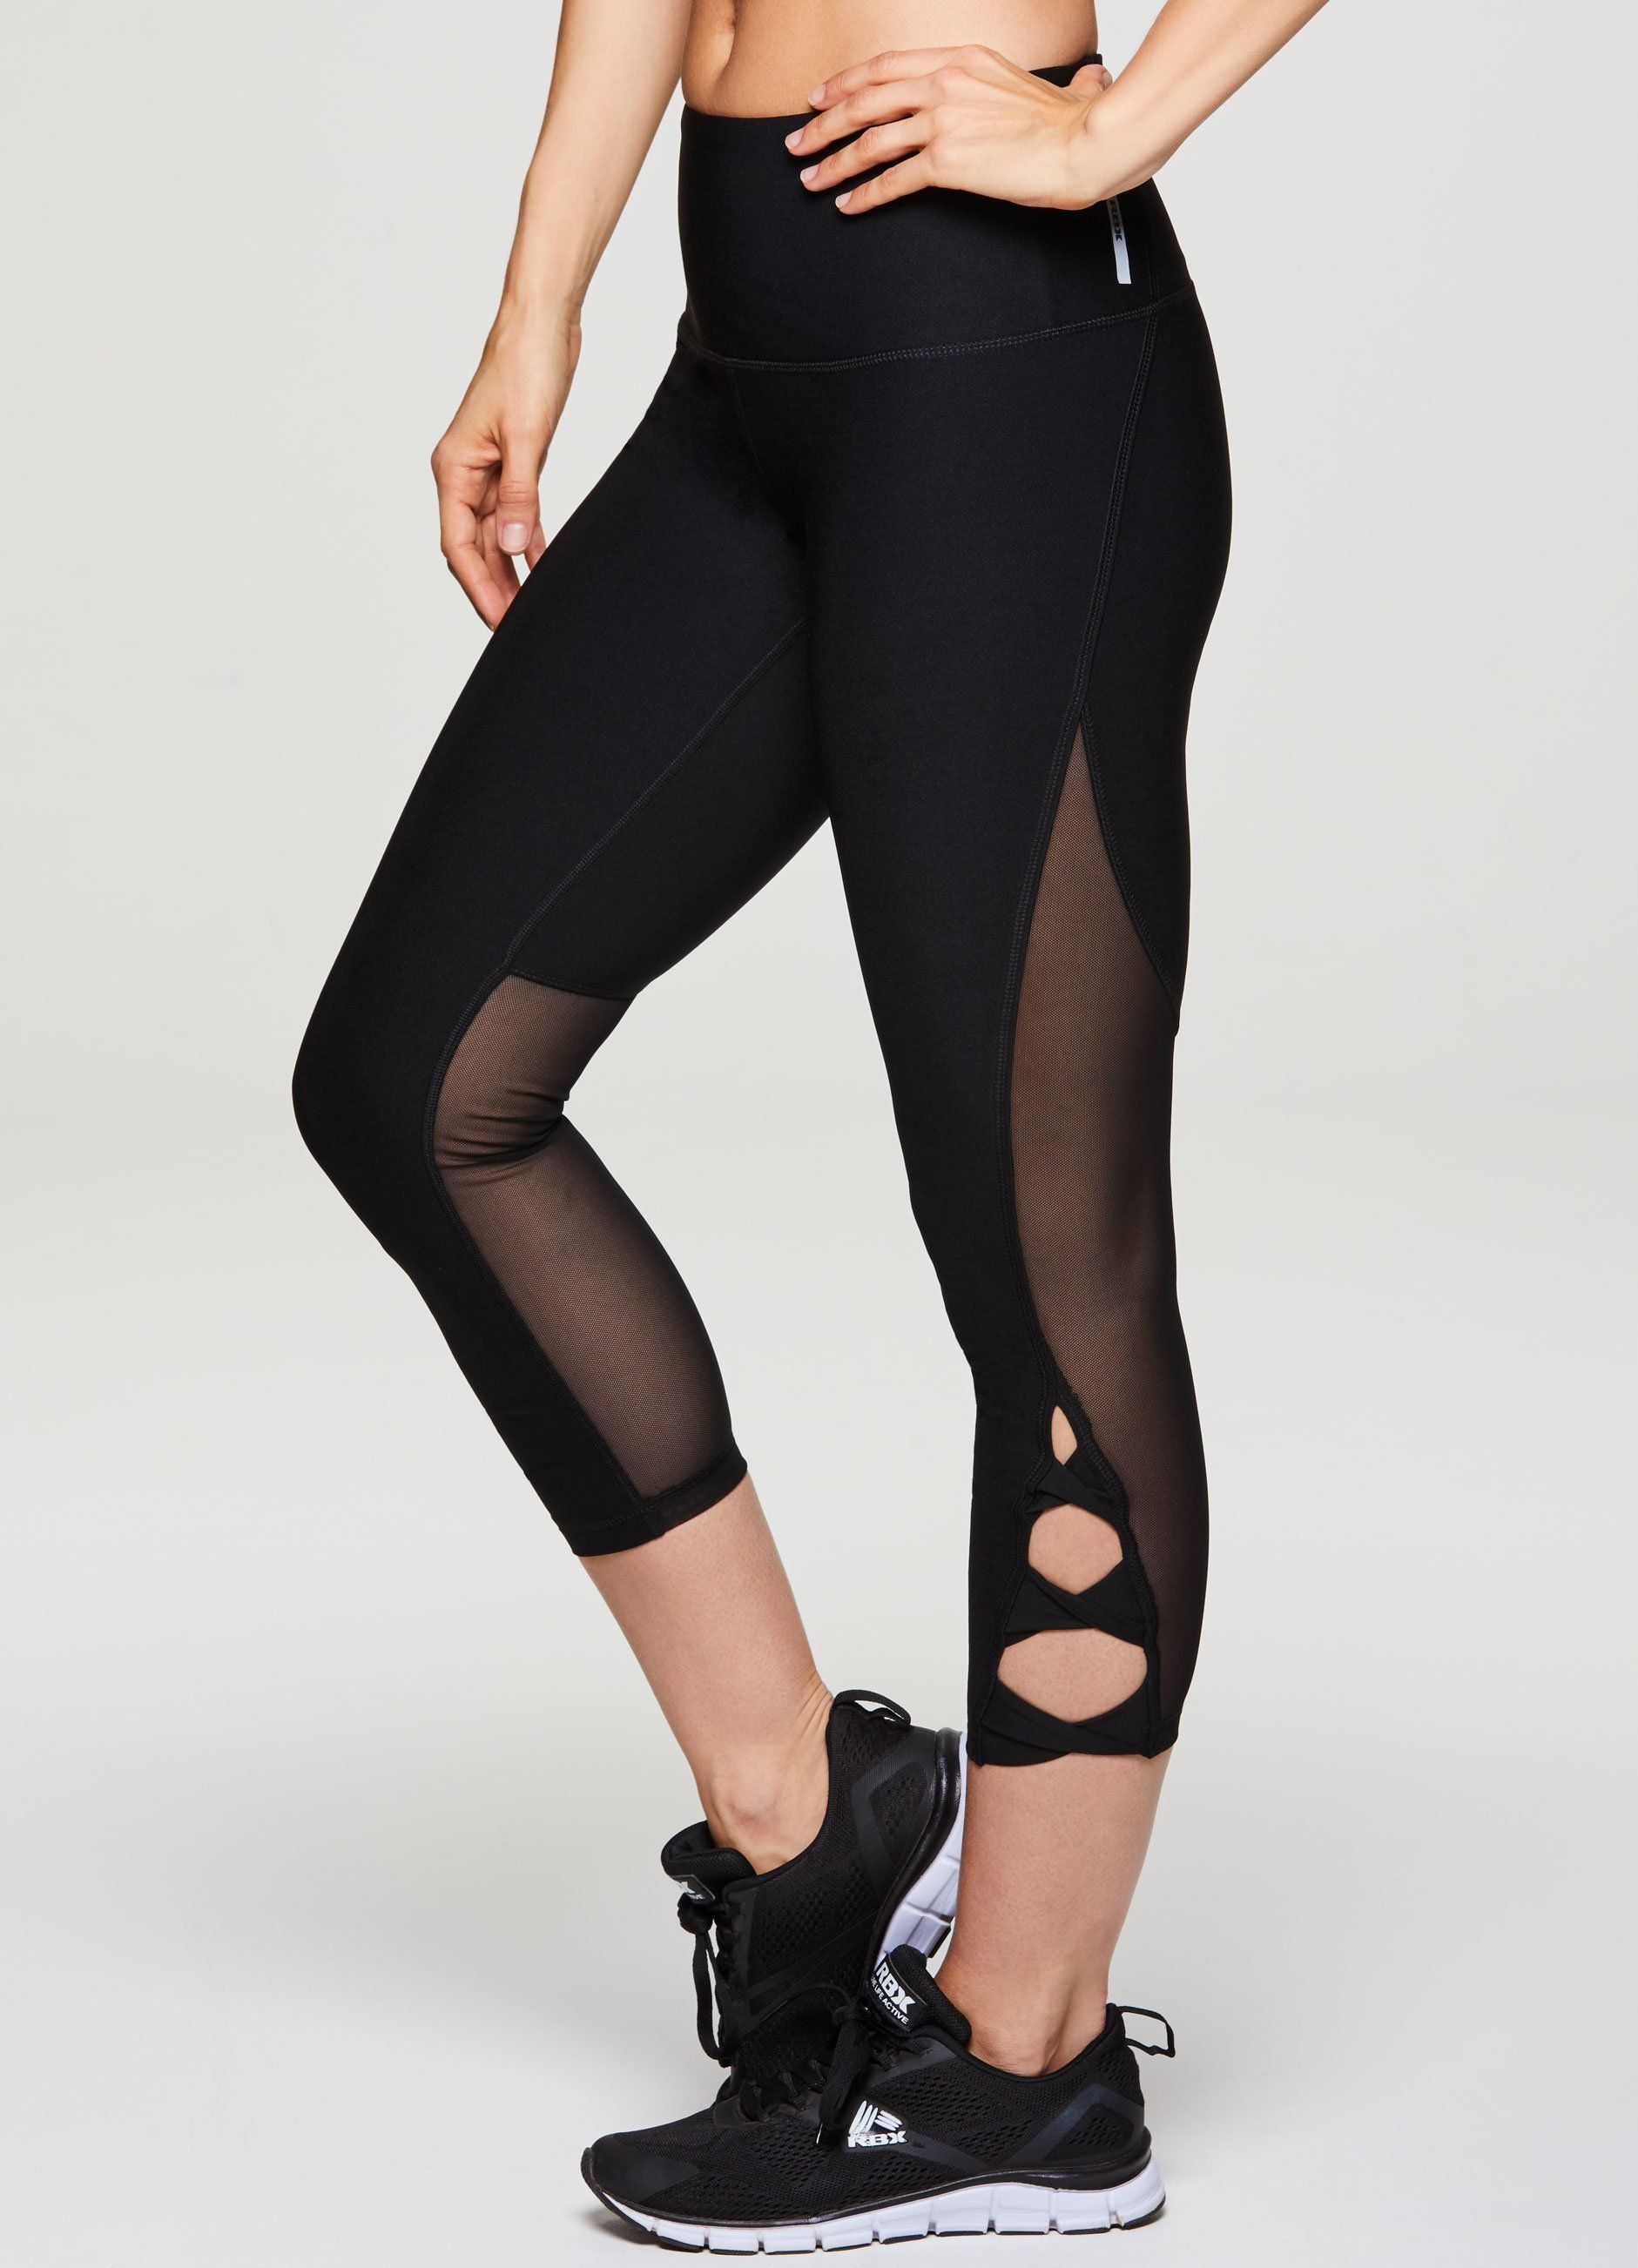 0eef1fd02d When your workout heats up, these leggings will keep you cool. Peached  fabric is super soft against your skin while providing extra hold and  control.